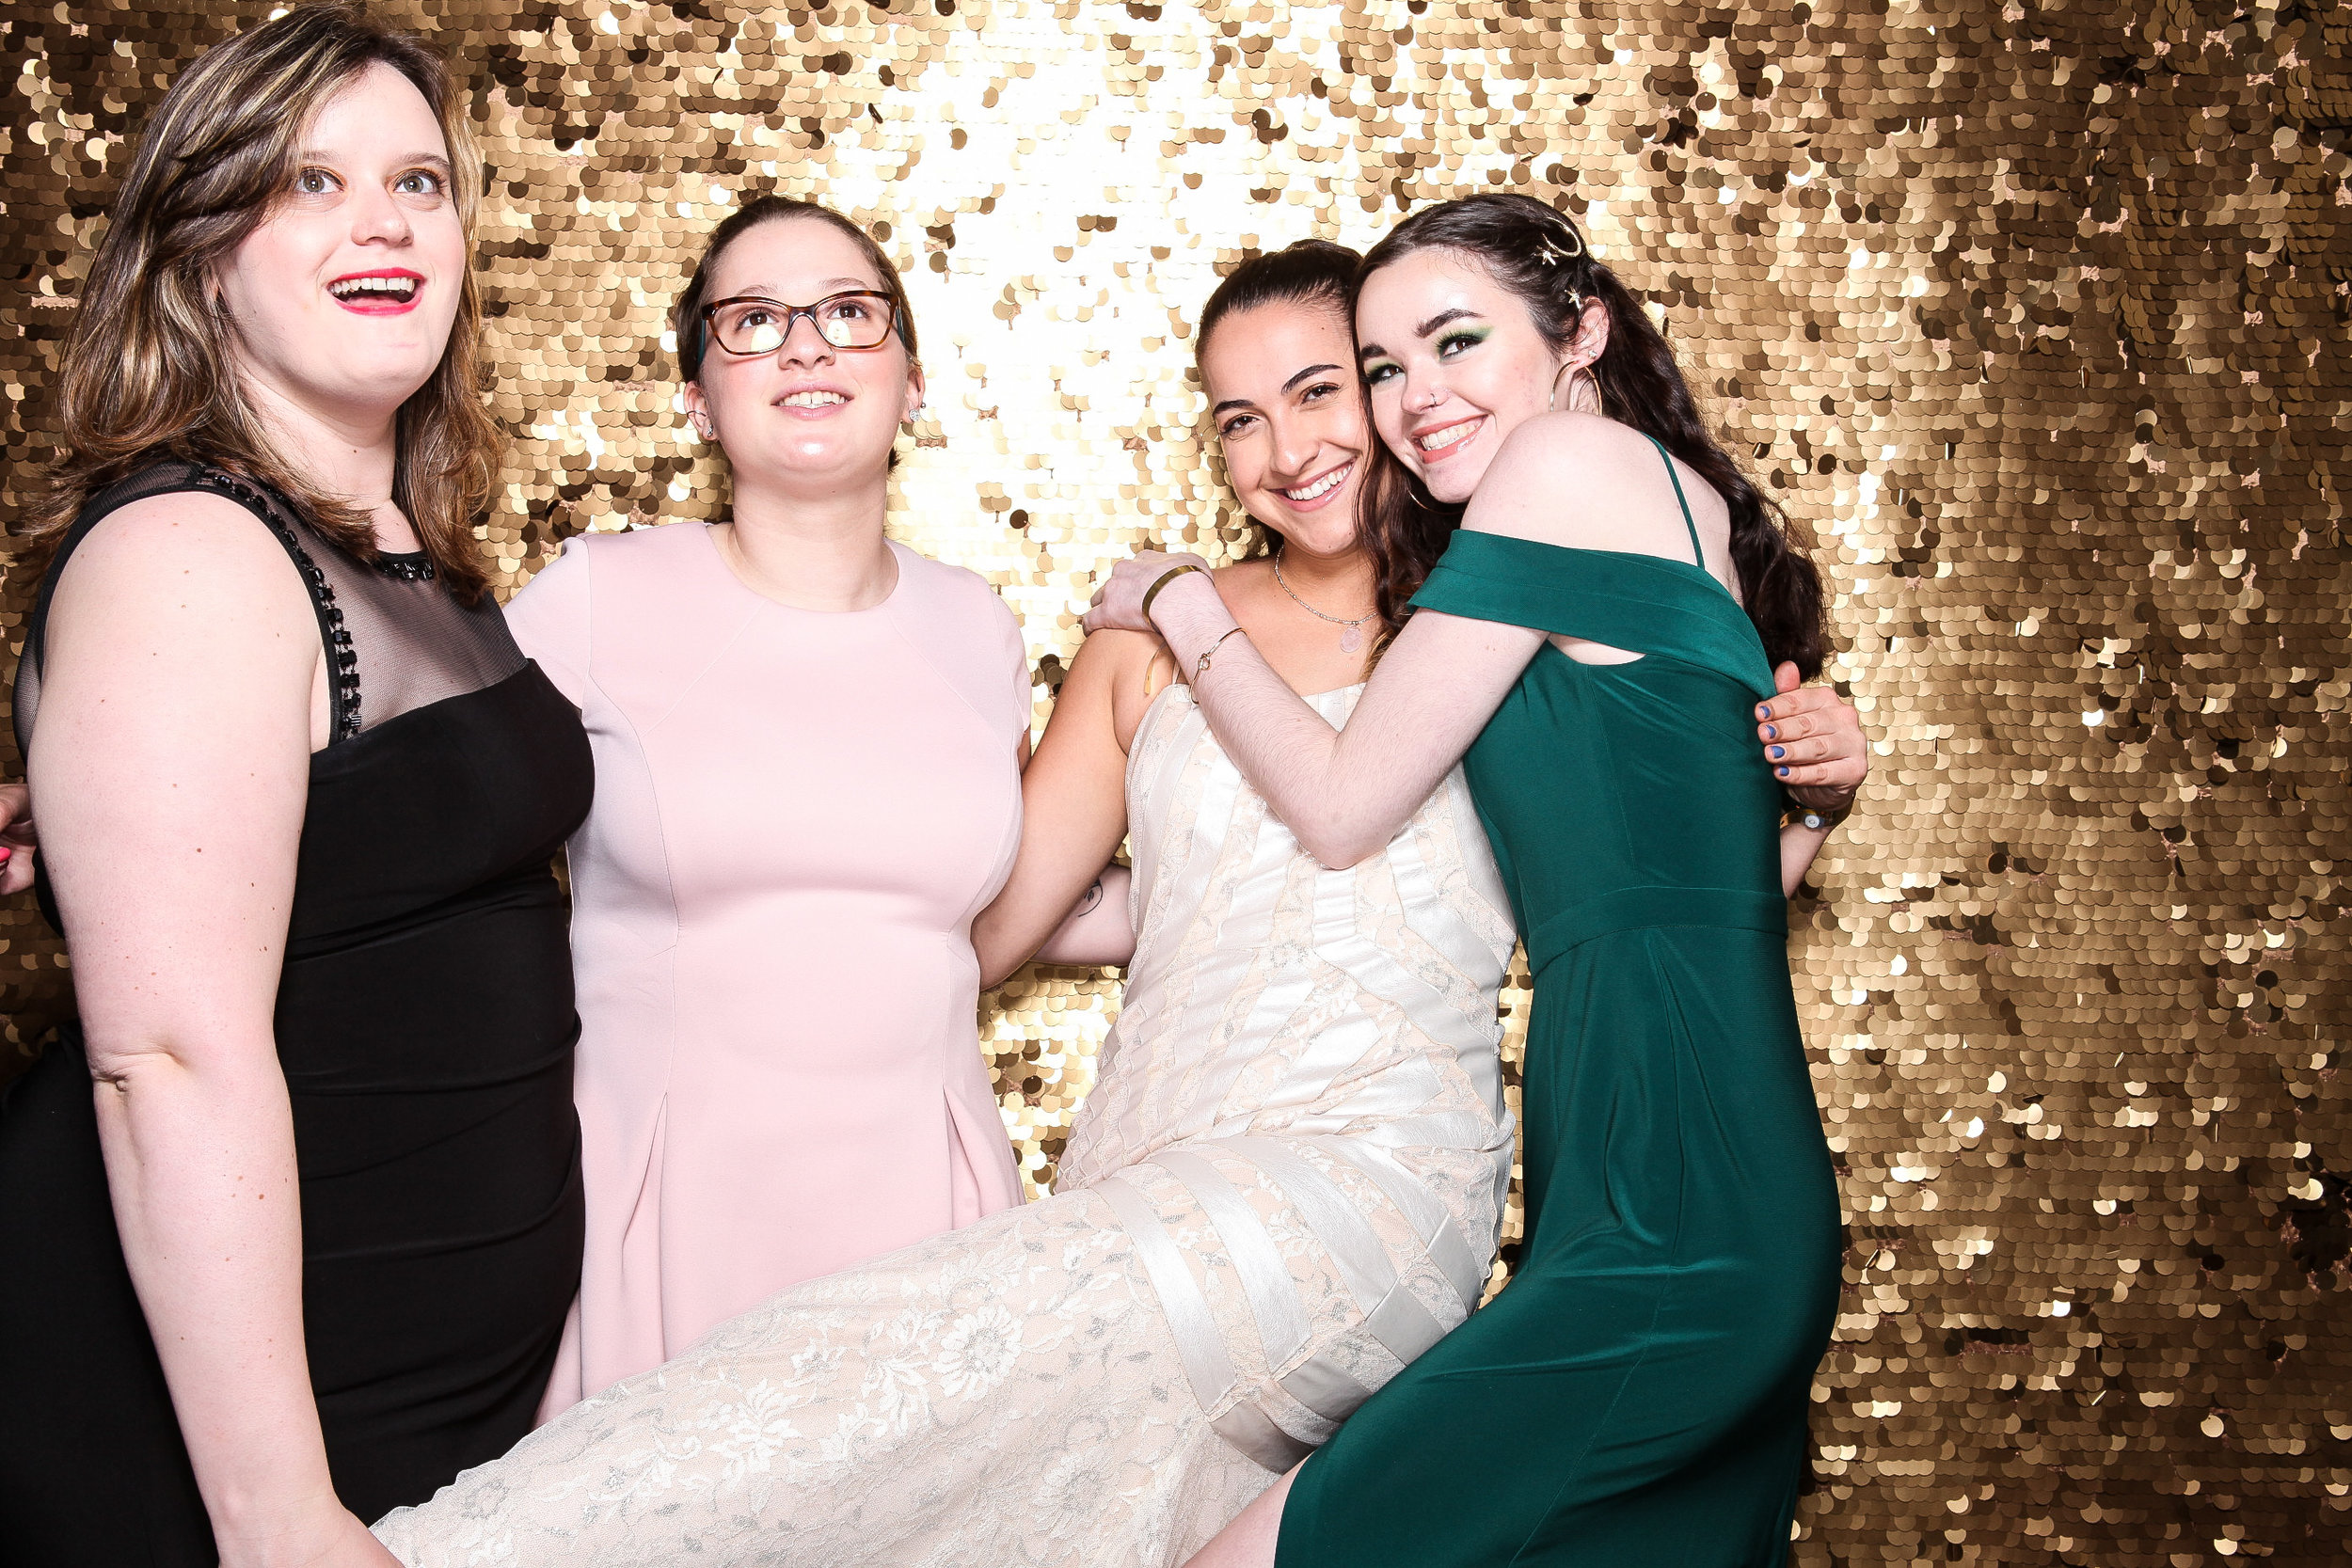 20190503_Adelphi_Senior_Formal-020.jpg